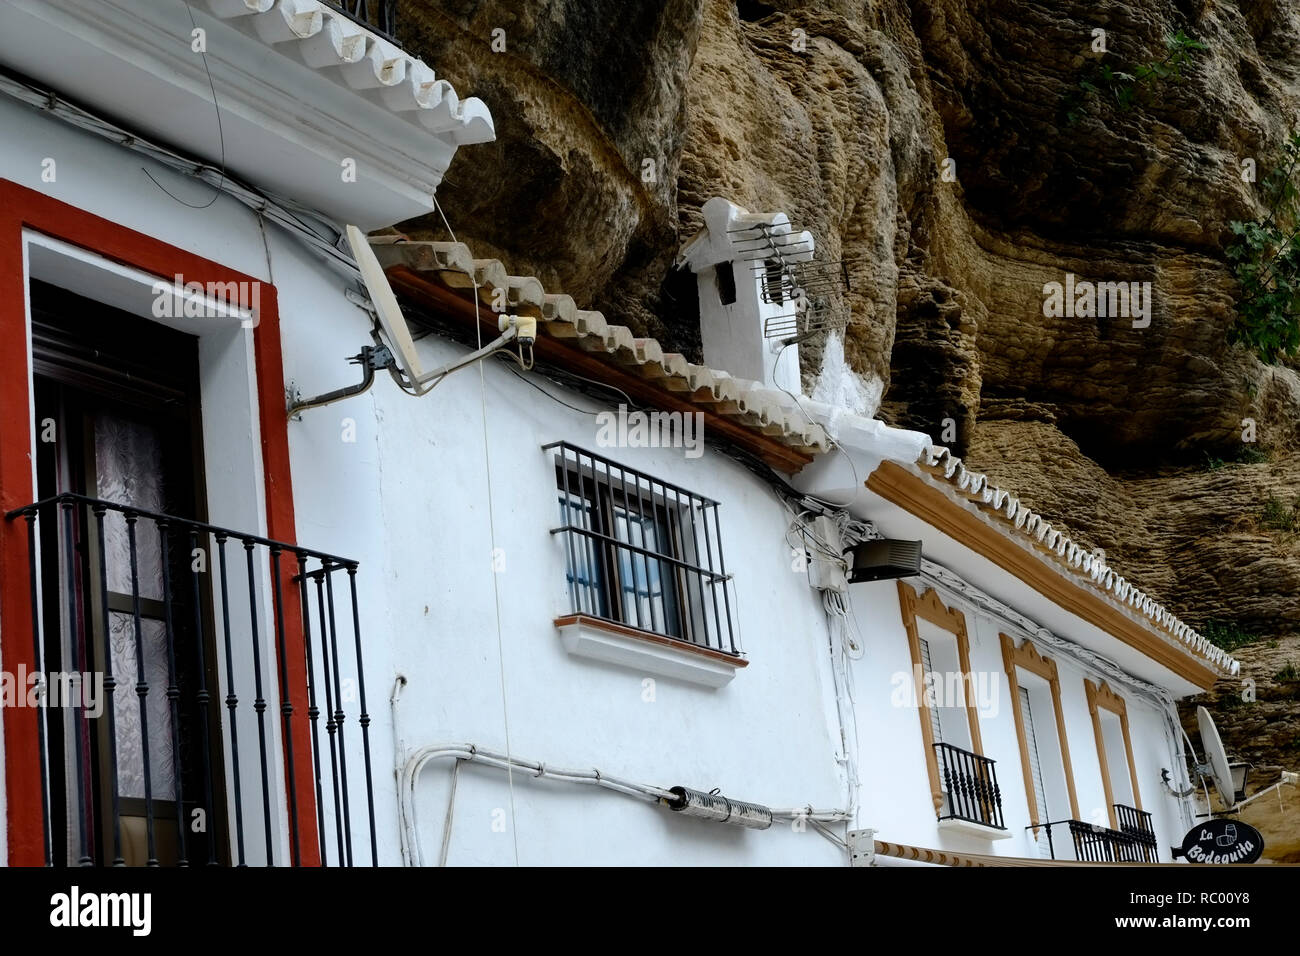 houses built into cliff stock photos houses built into cliff stock images alamy. Black Bedroom Furniture Sets. Home Design Ideas